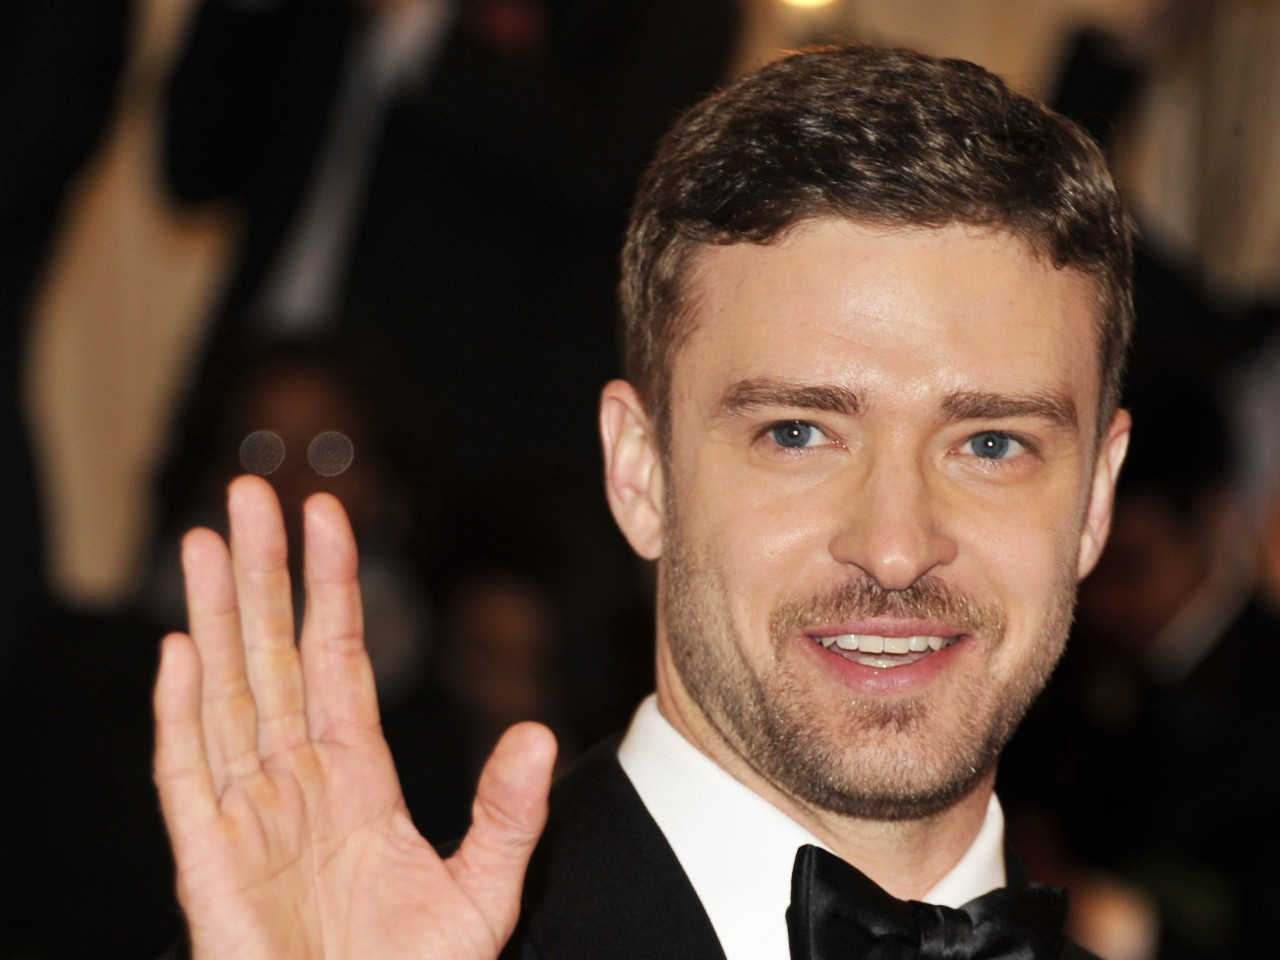 Justin Timberlake disses Donald Sterling at Billboard Music Awards Justin Timberlake